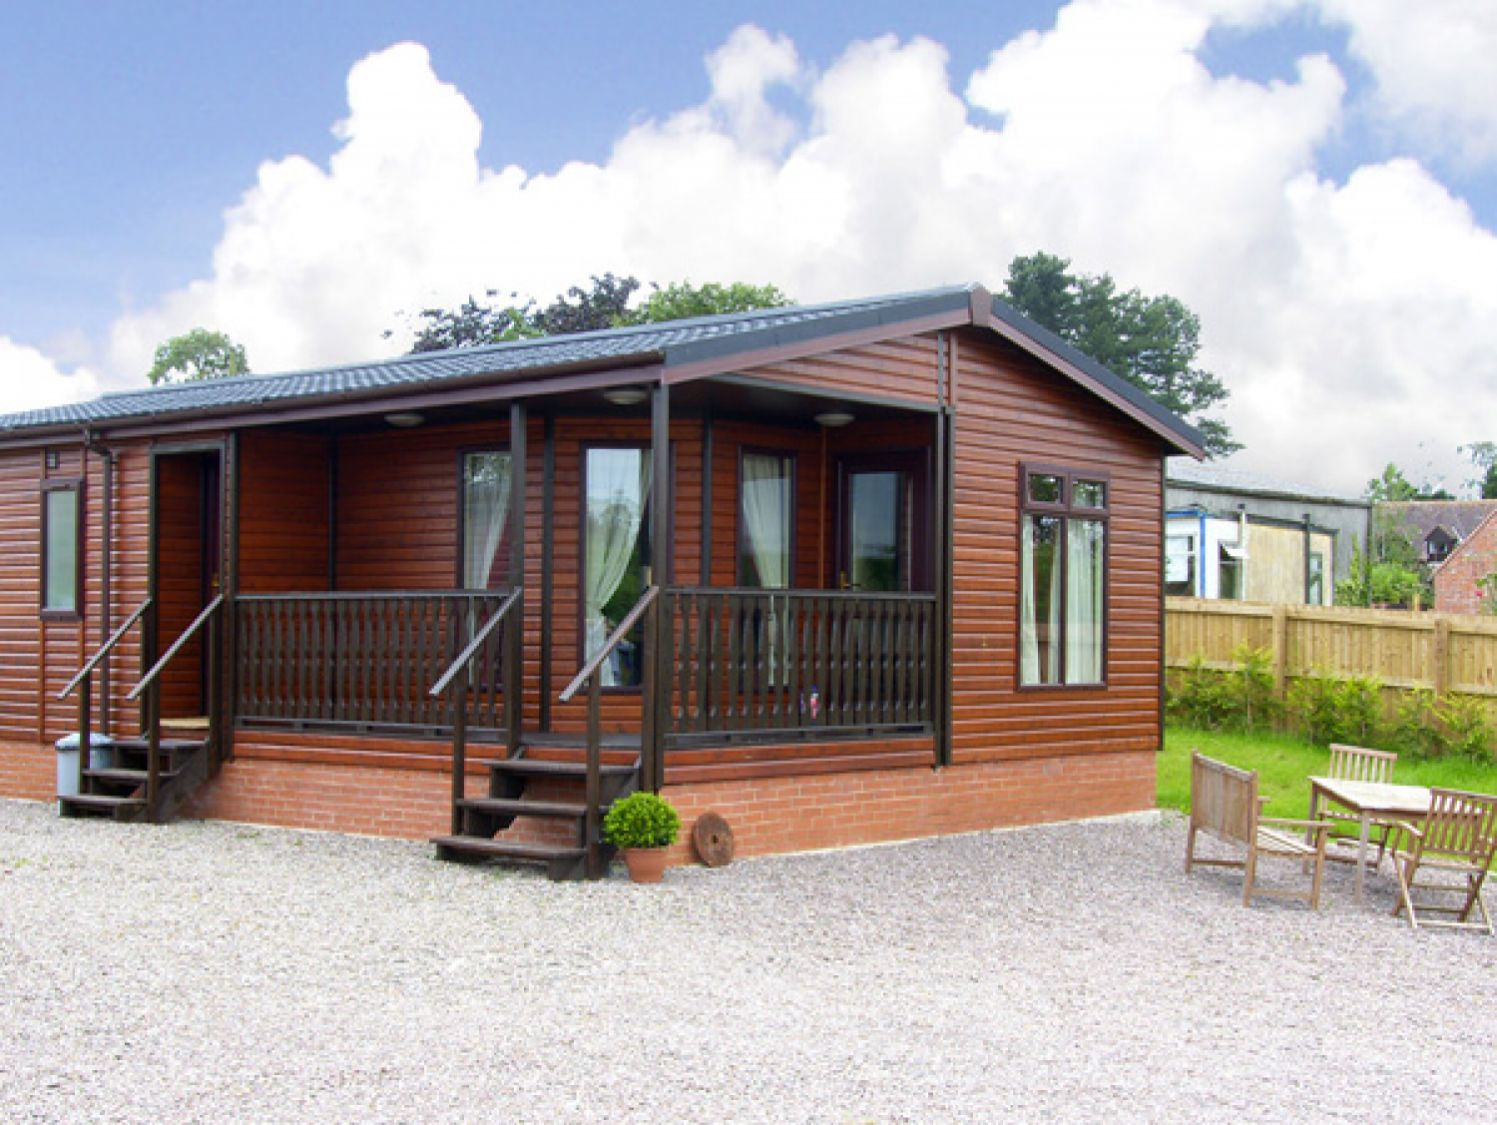 Rhubarb Lodge Holiday Lodges in Herefordshire